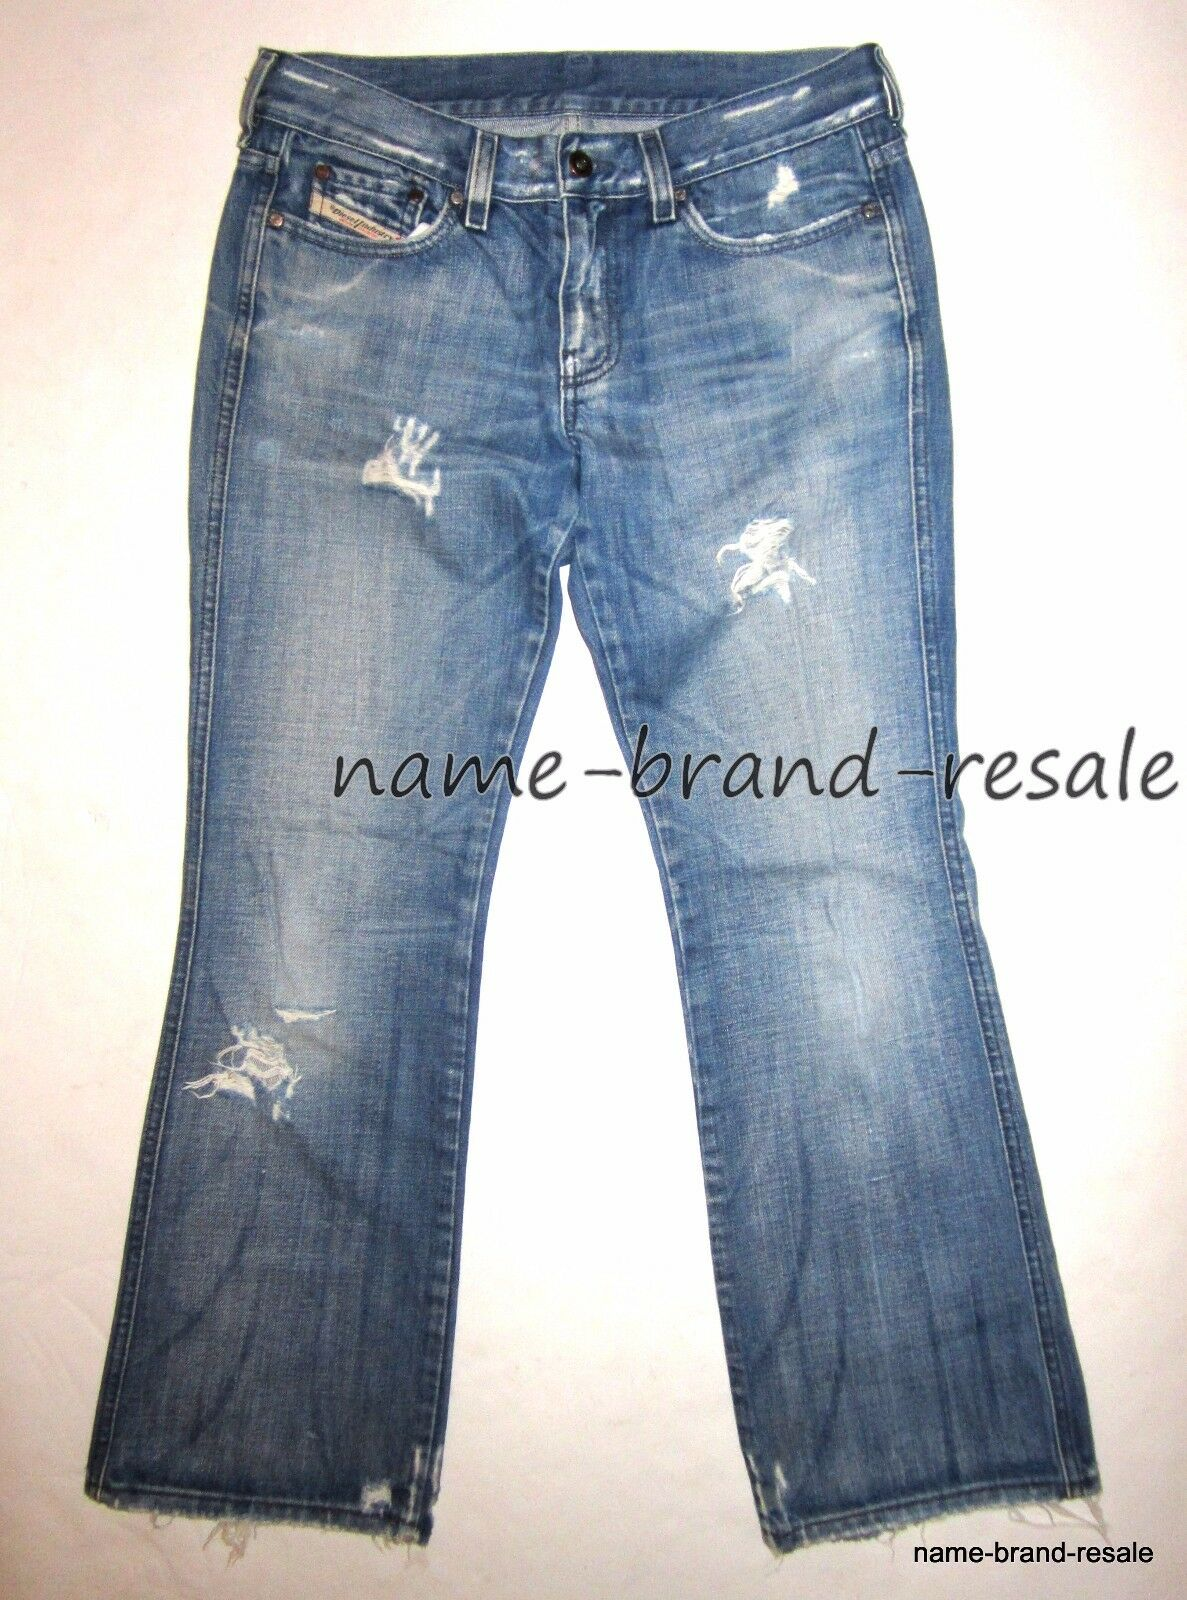 DIESEL RAME Faded Denim Boot JEANS Womens 29 x 30 Ripped Distressed Destroyed